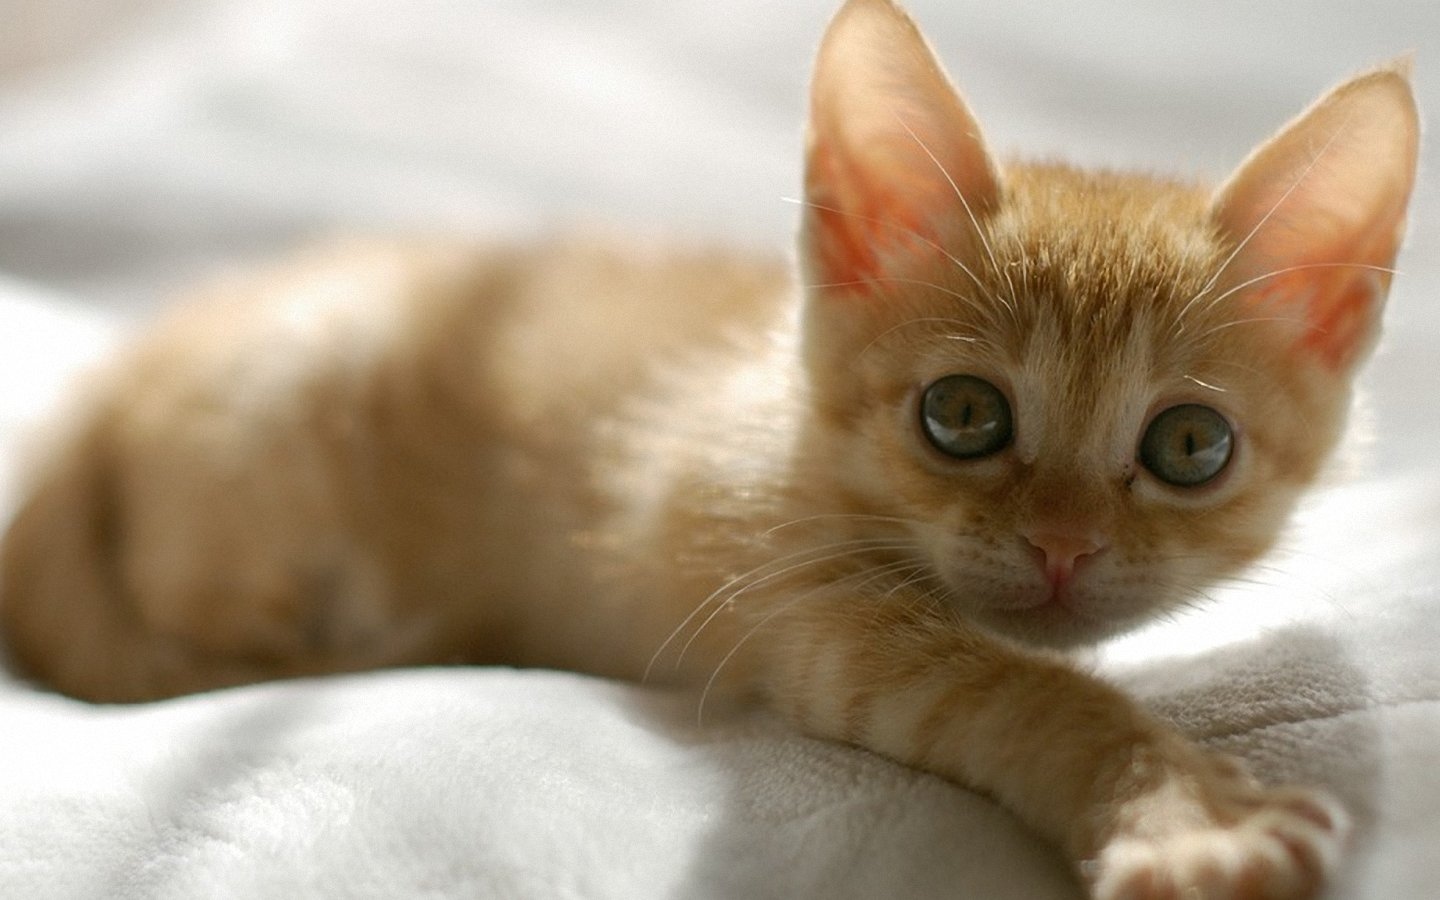 Cute Pets Wallpaper Hd Cute Orange Kitten Wallpapers Cute Orange Kitten Stock